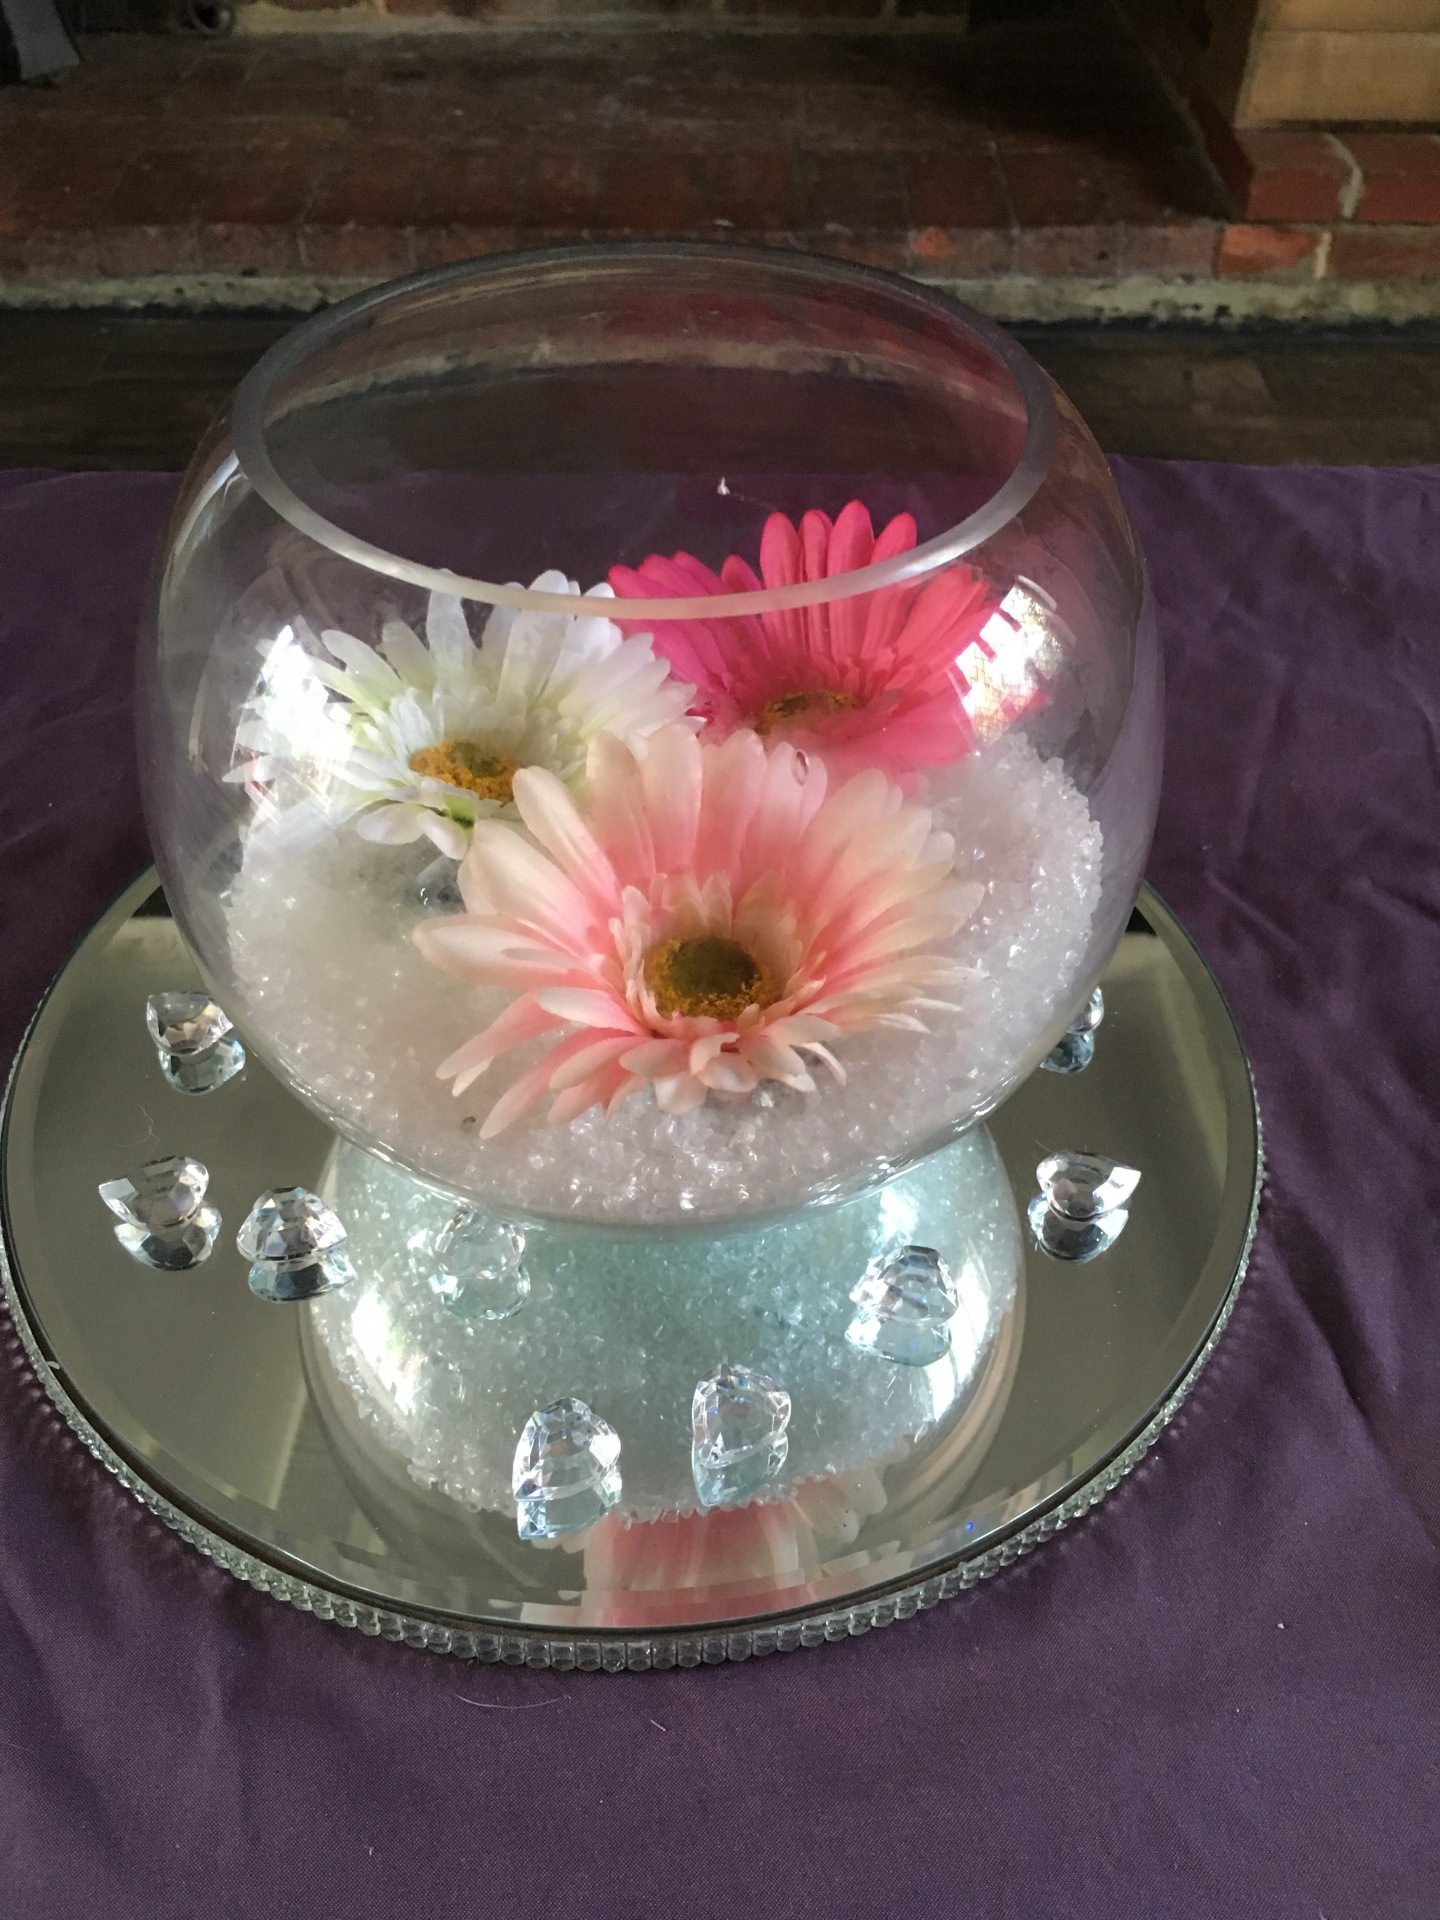 Fish bowl supplied with mirrored plate, scatter crystals, glass balls & flower heads